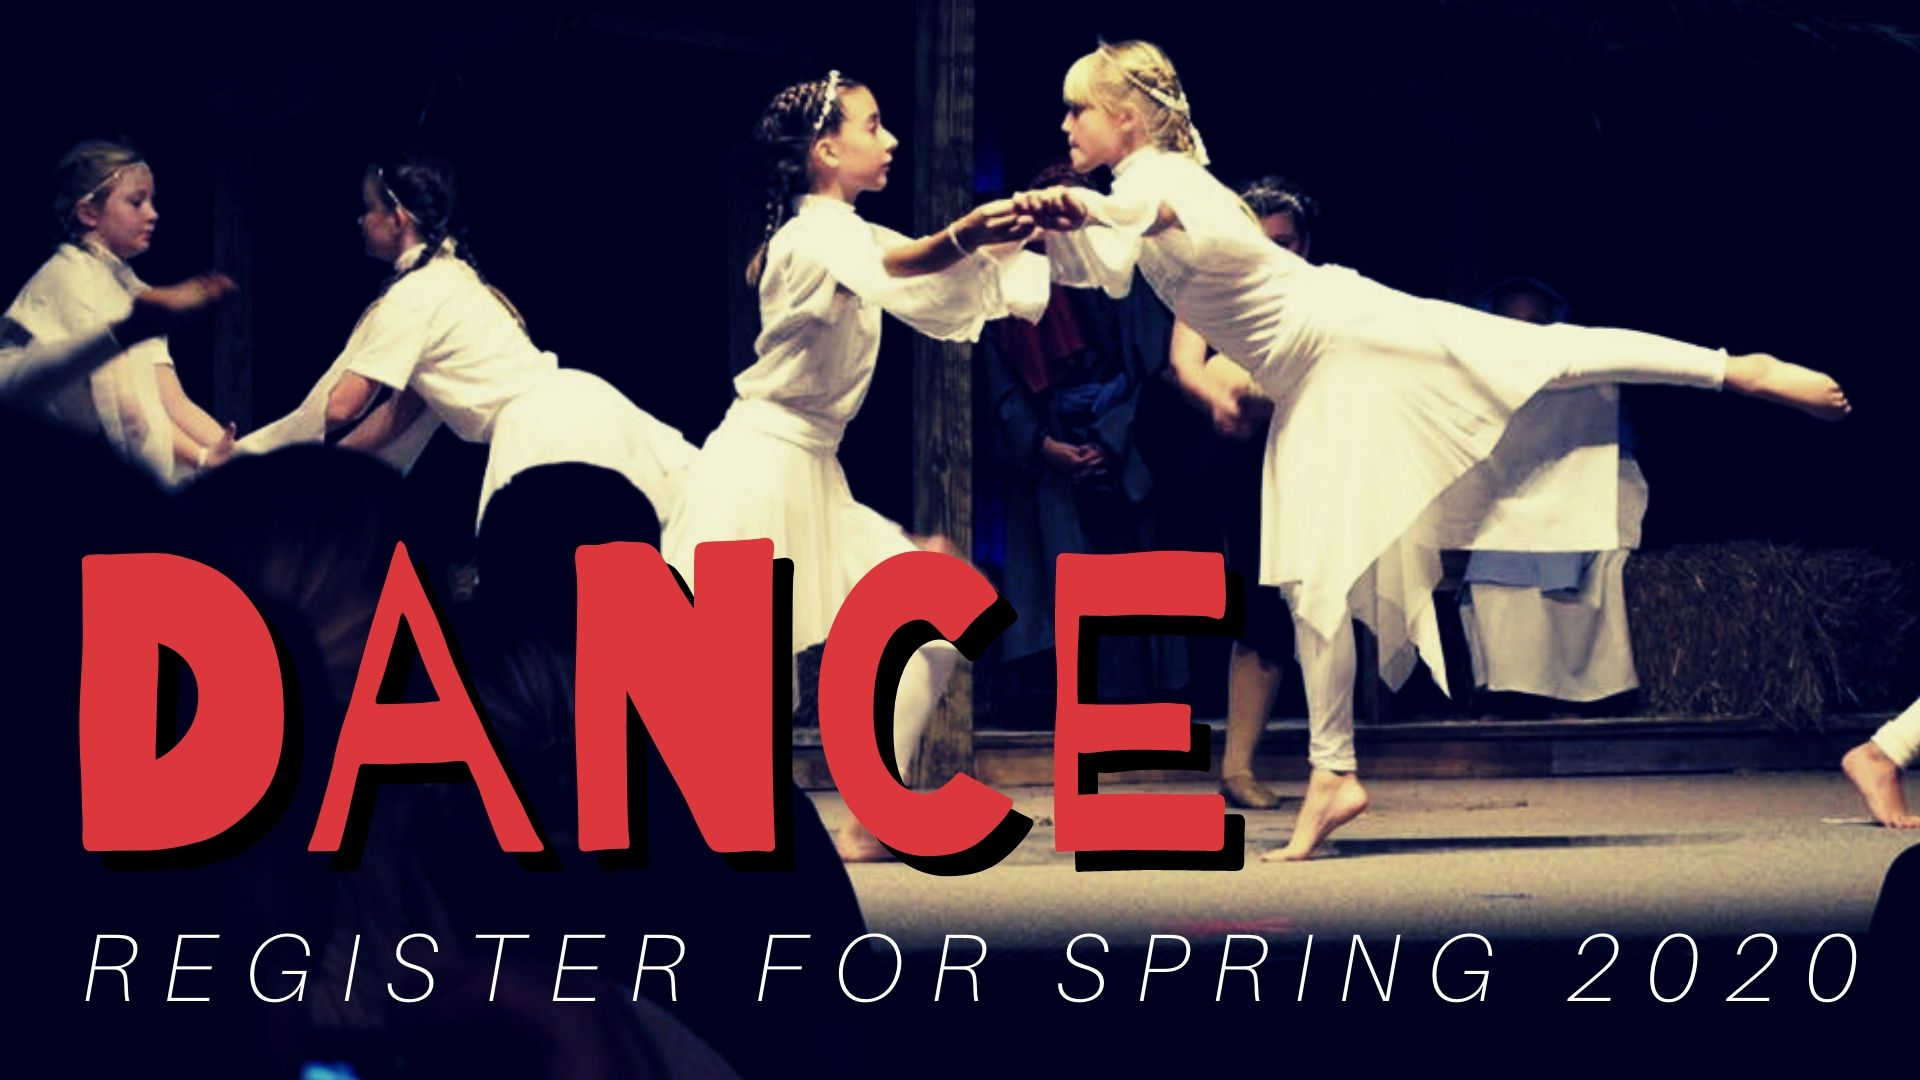 Dance registration SPRING 2020 image